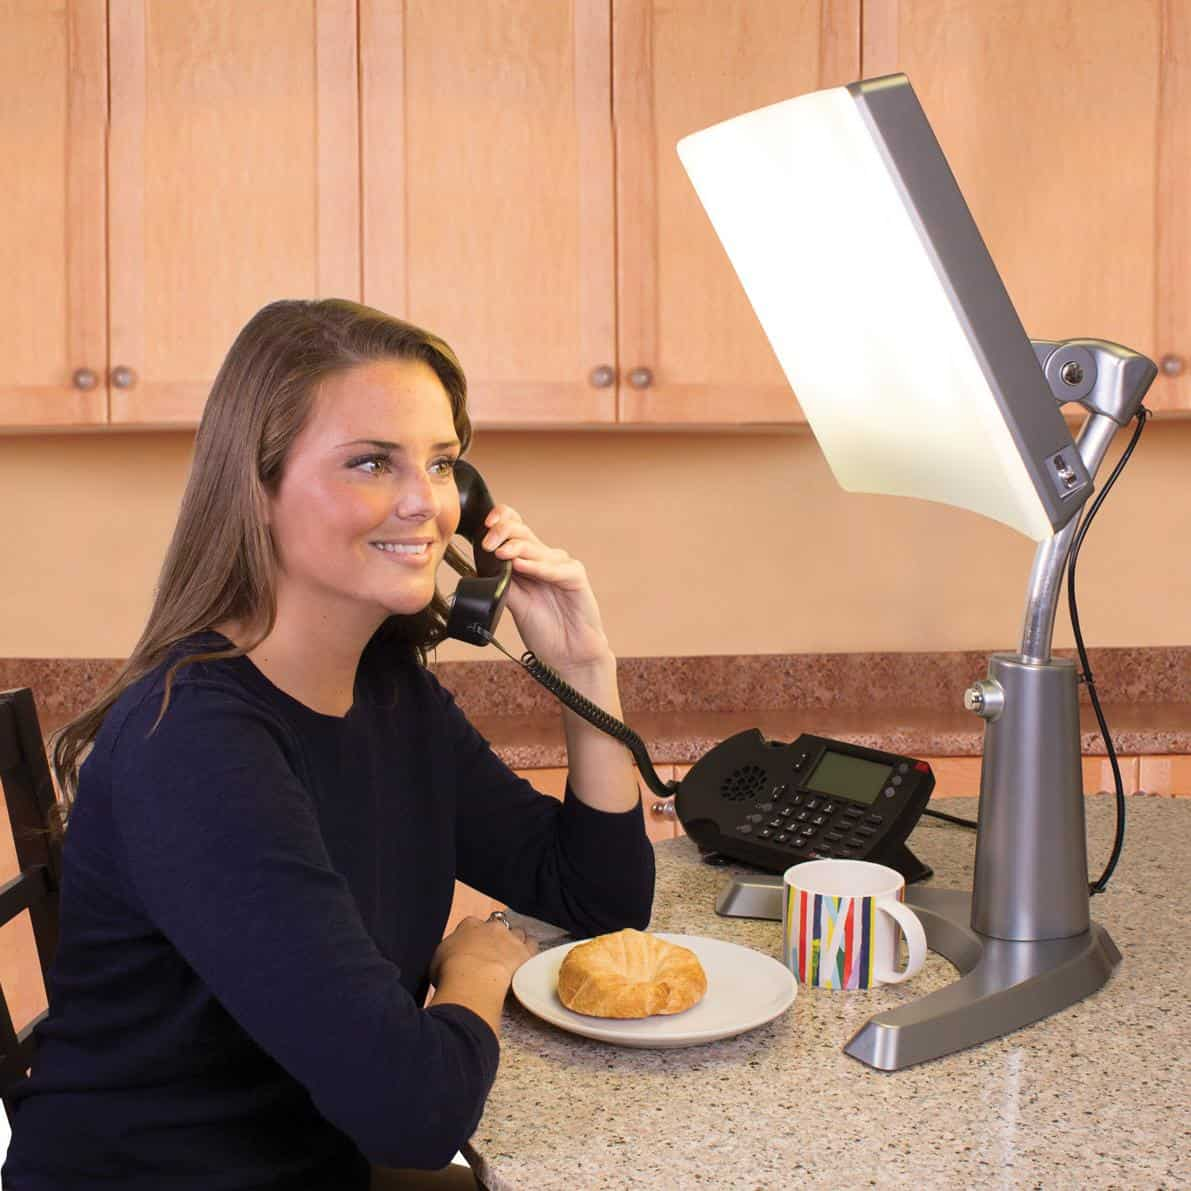 Winter Blues Light Therapy Can Help Melissa Welby Md